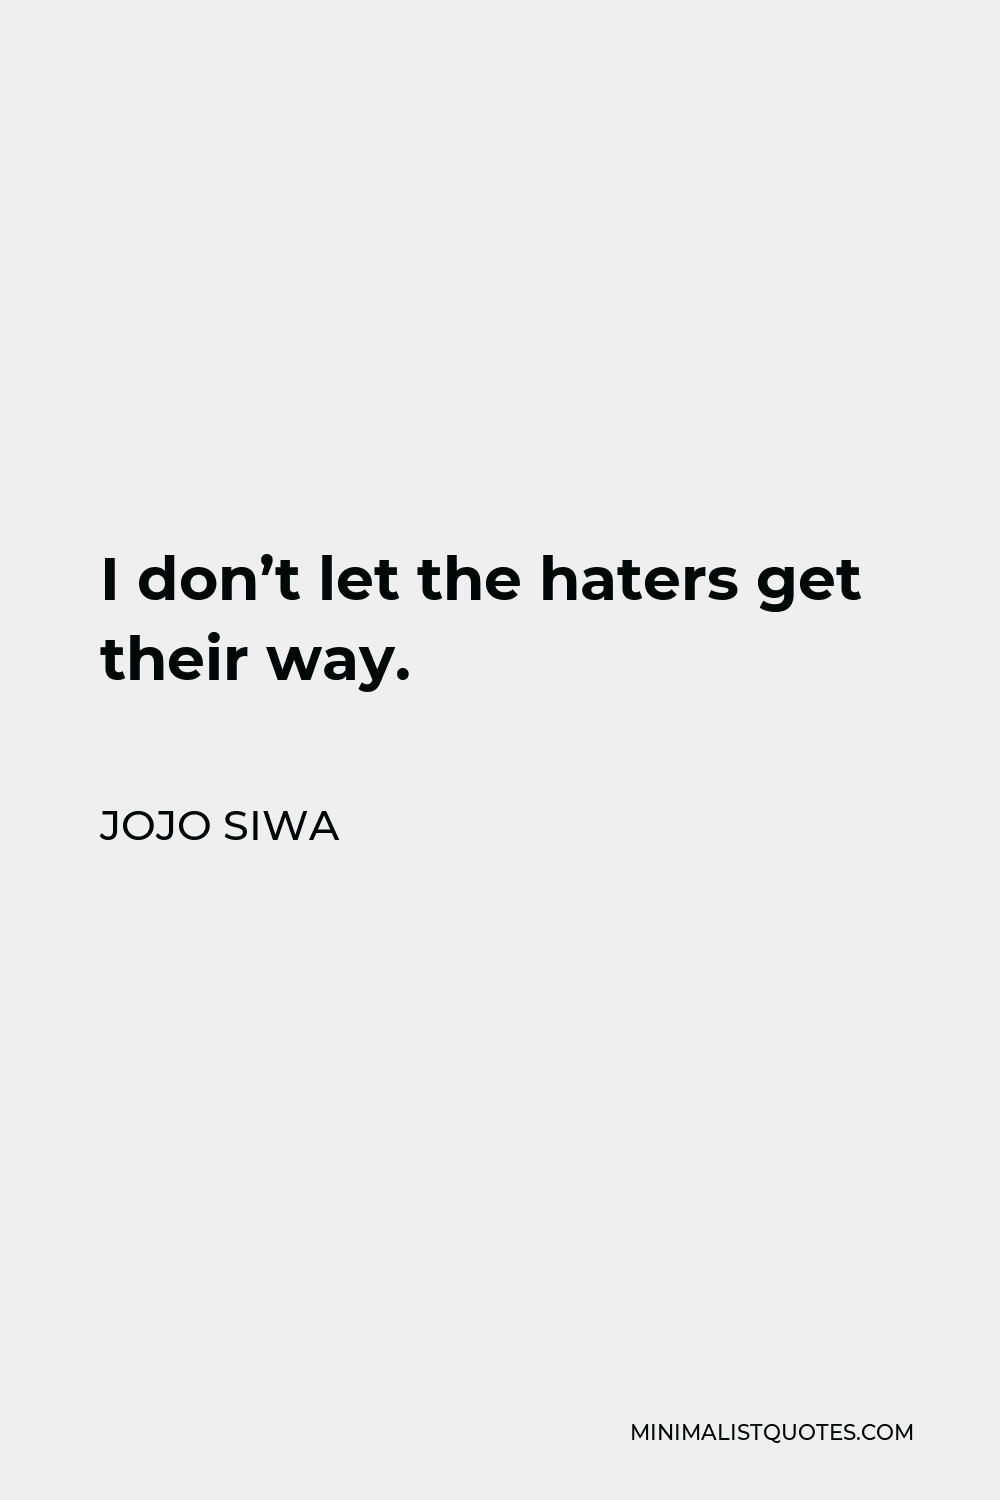 JoJo Siwa Quote - I don't let the haters get their way.